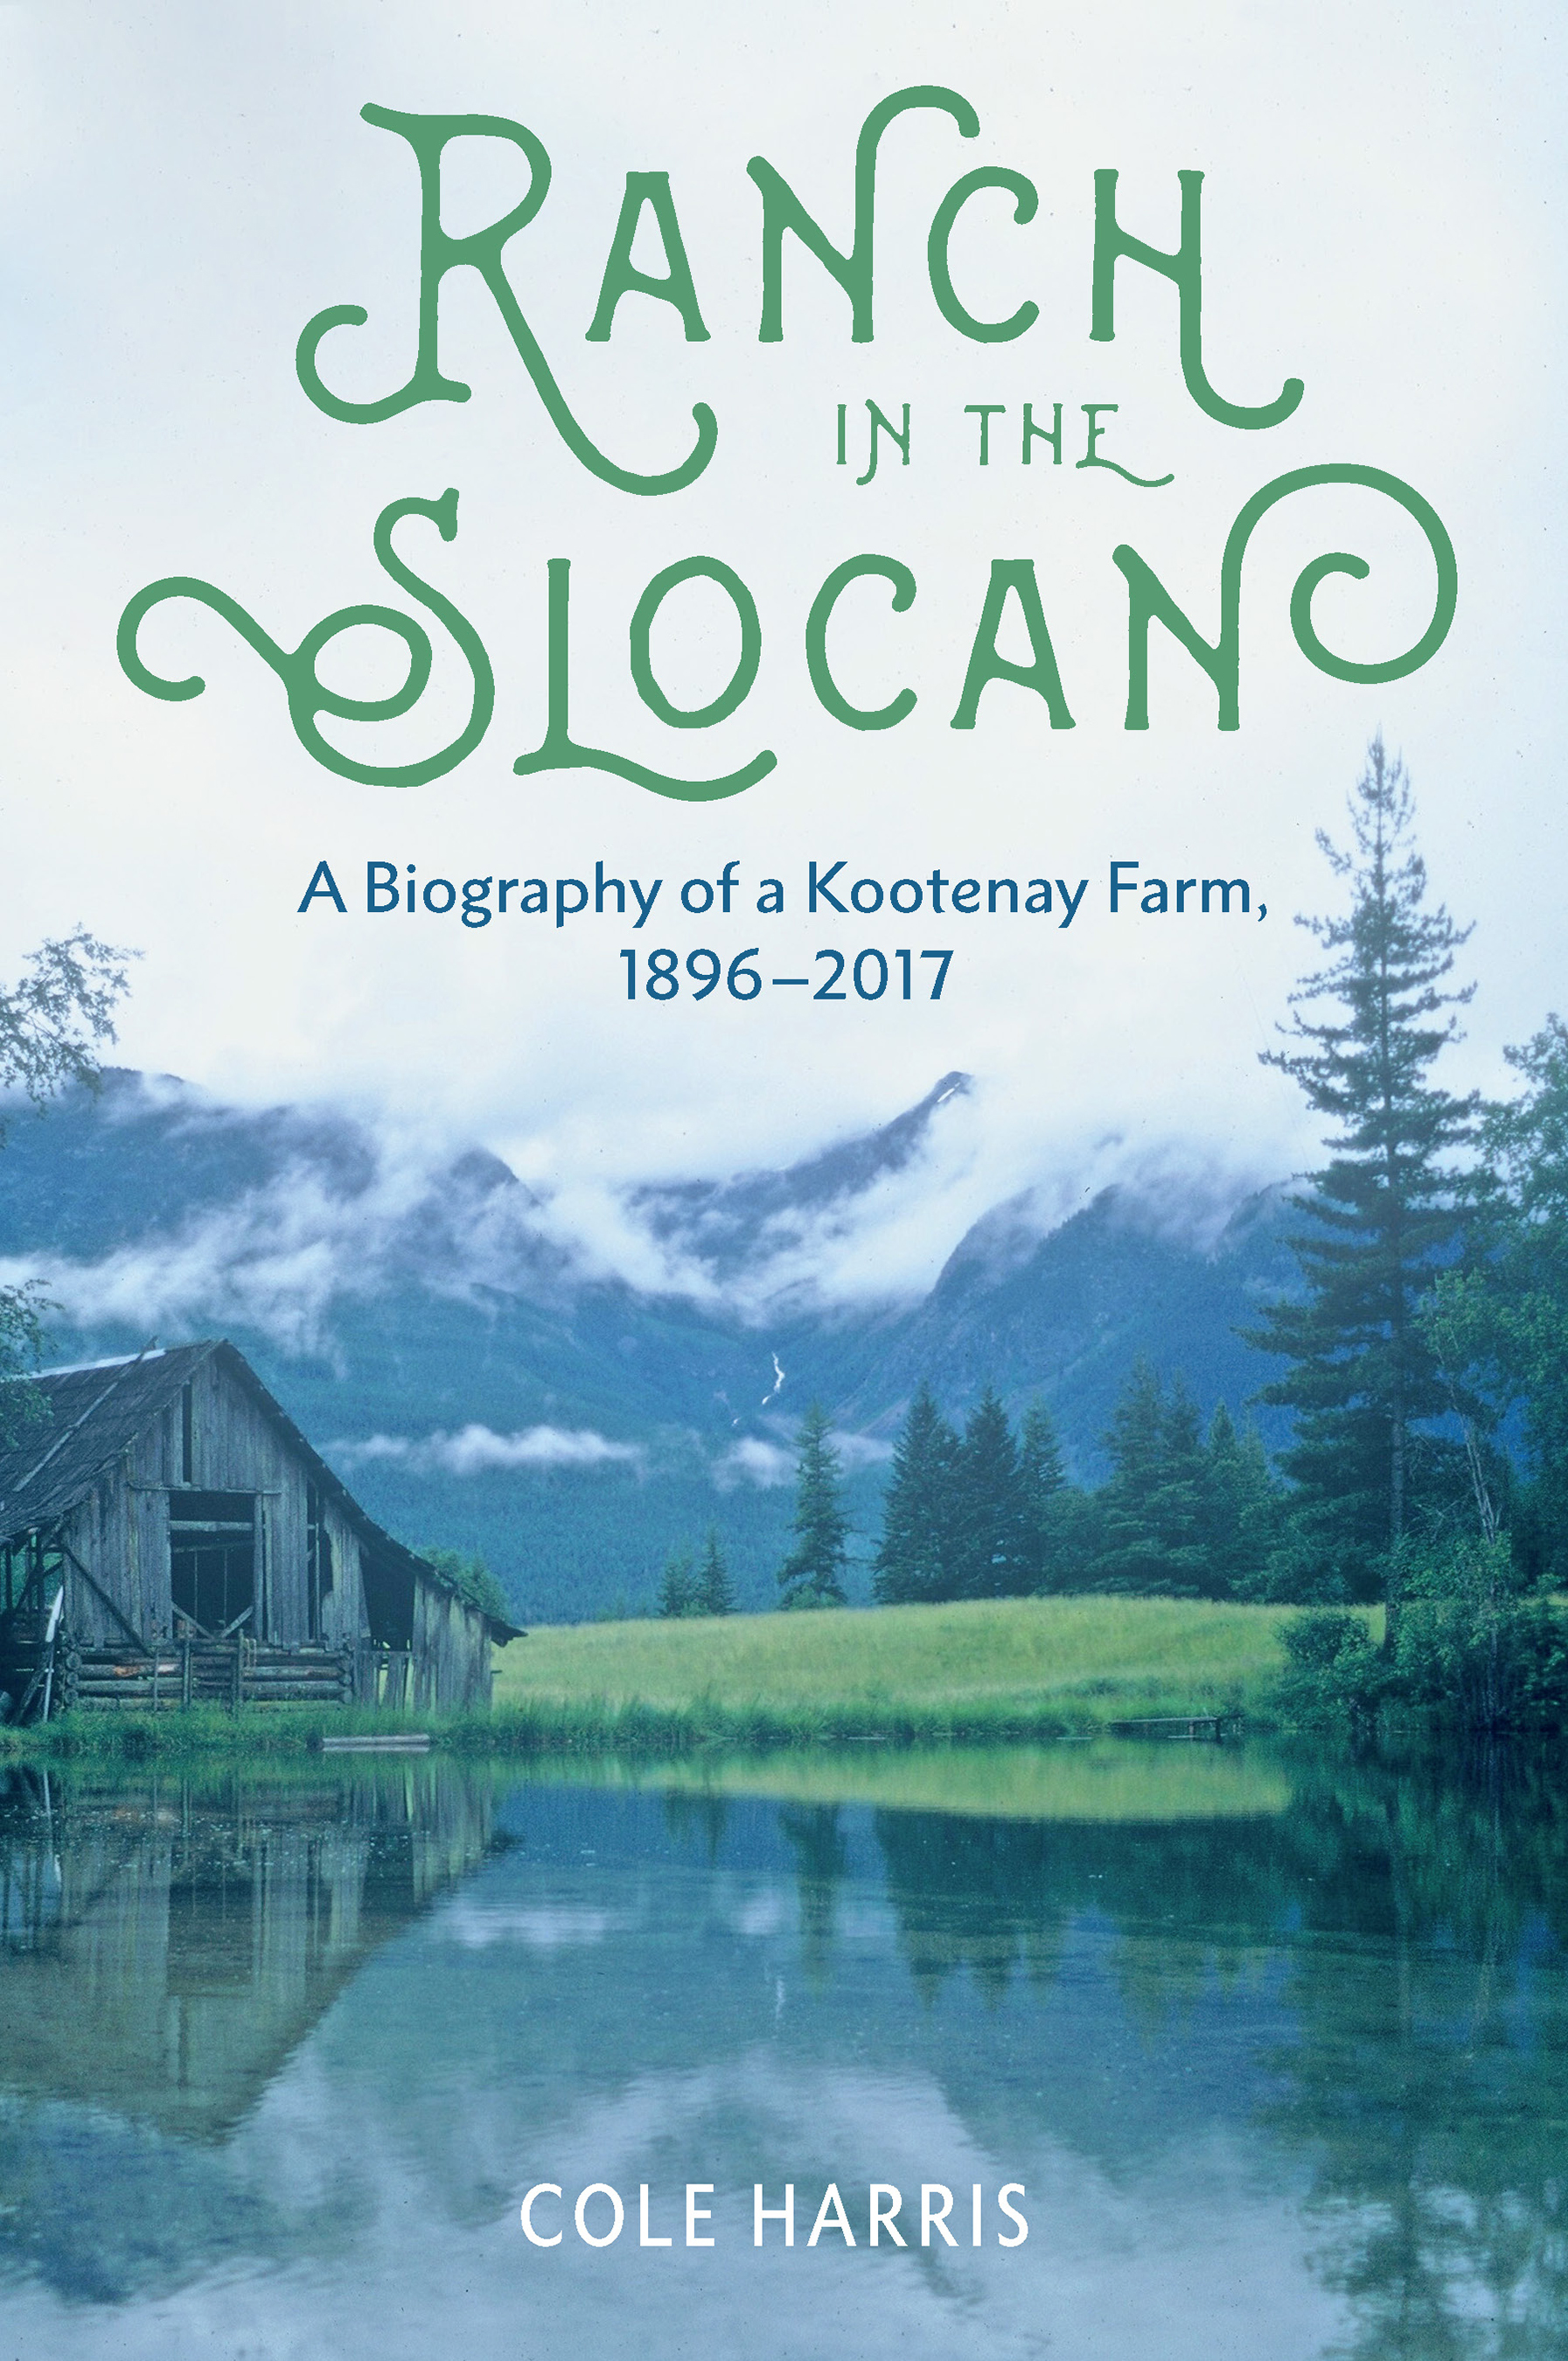 Ranch in the Slocan A Biography of a Kootenay Farm, 1896-2017